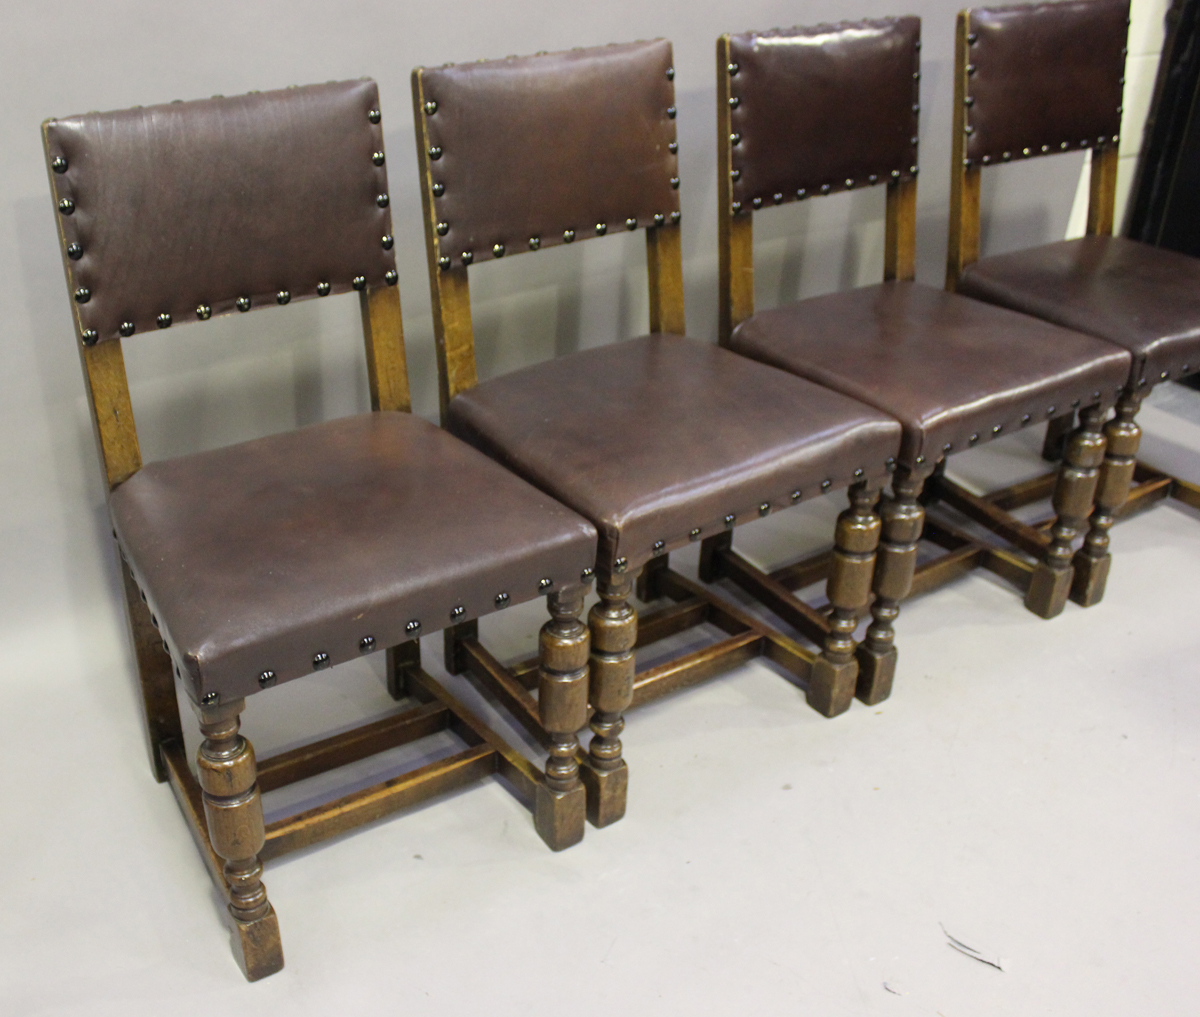 An early/mid-20th century harlequin set of seven oak framed dining chairs, comprising a set of - Image 2 of 4